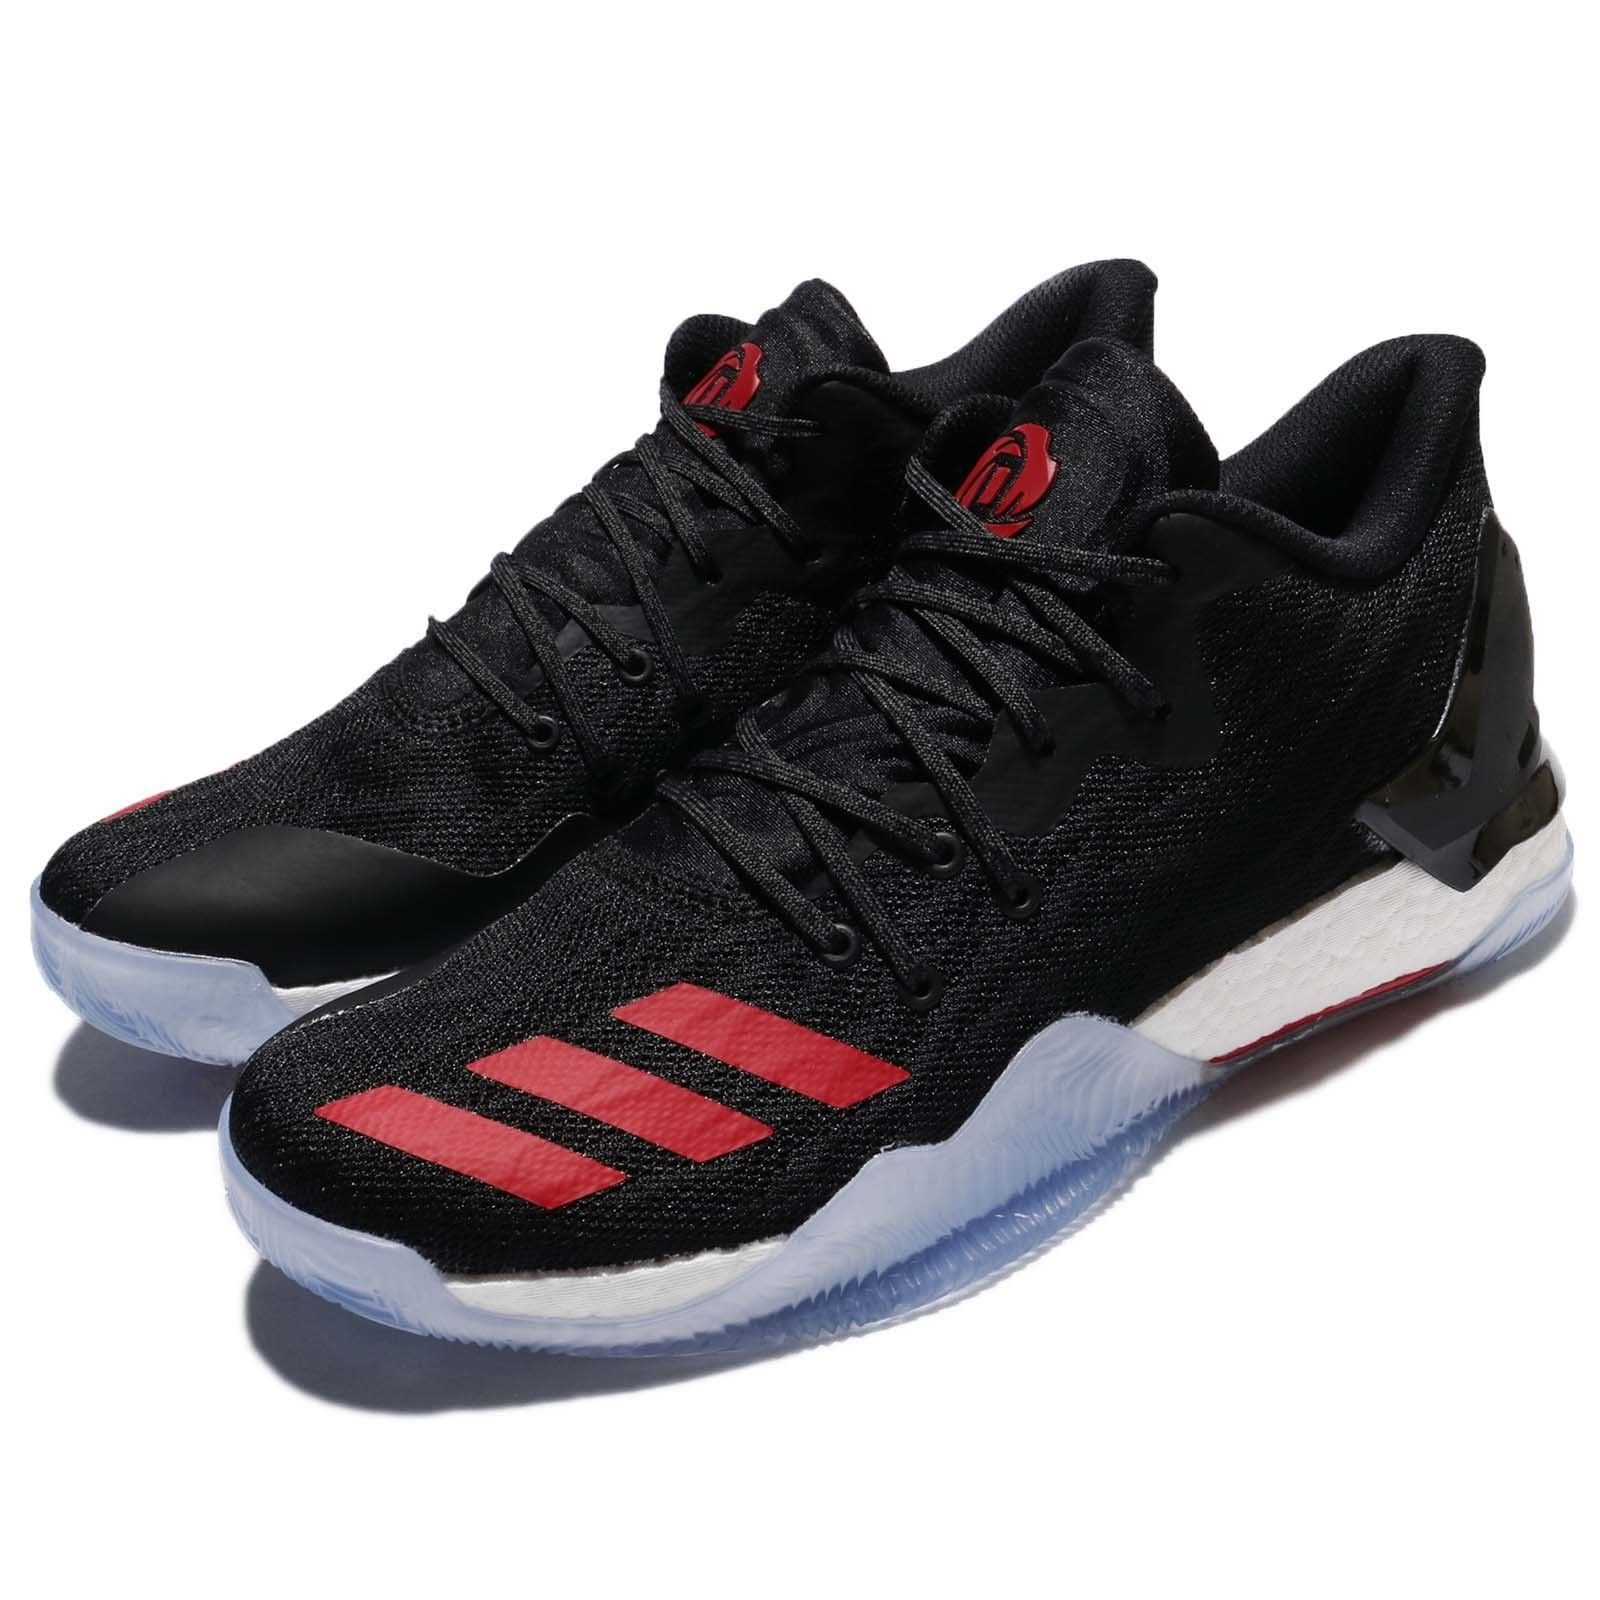 be4cea579d5 derrick rose slippers Sale